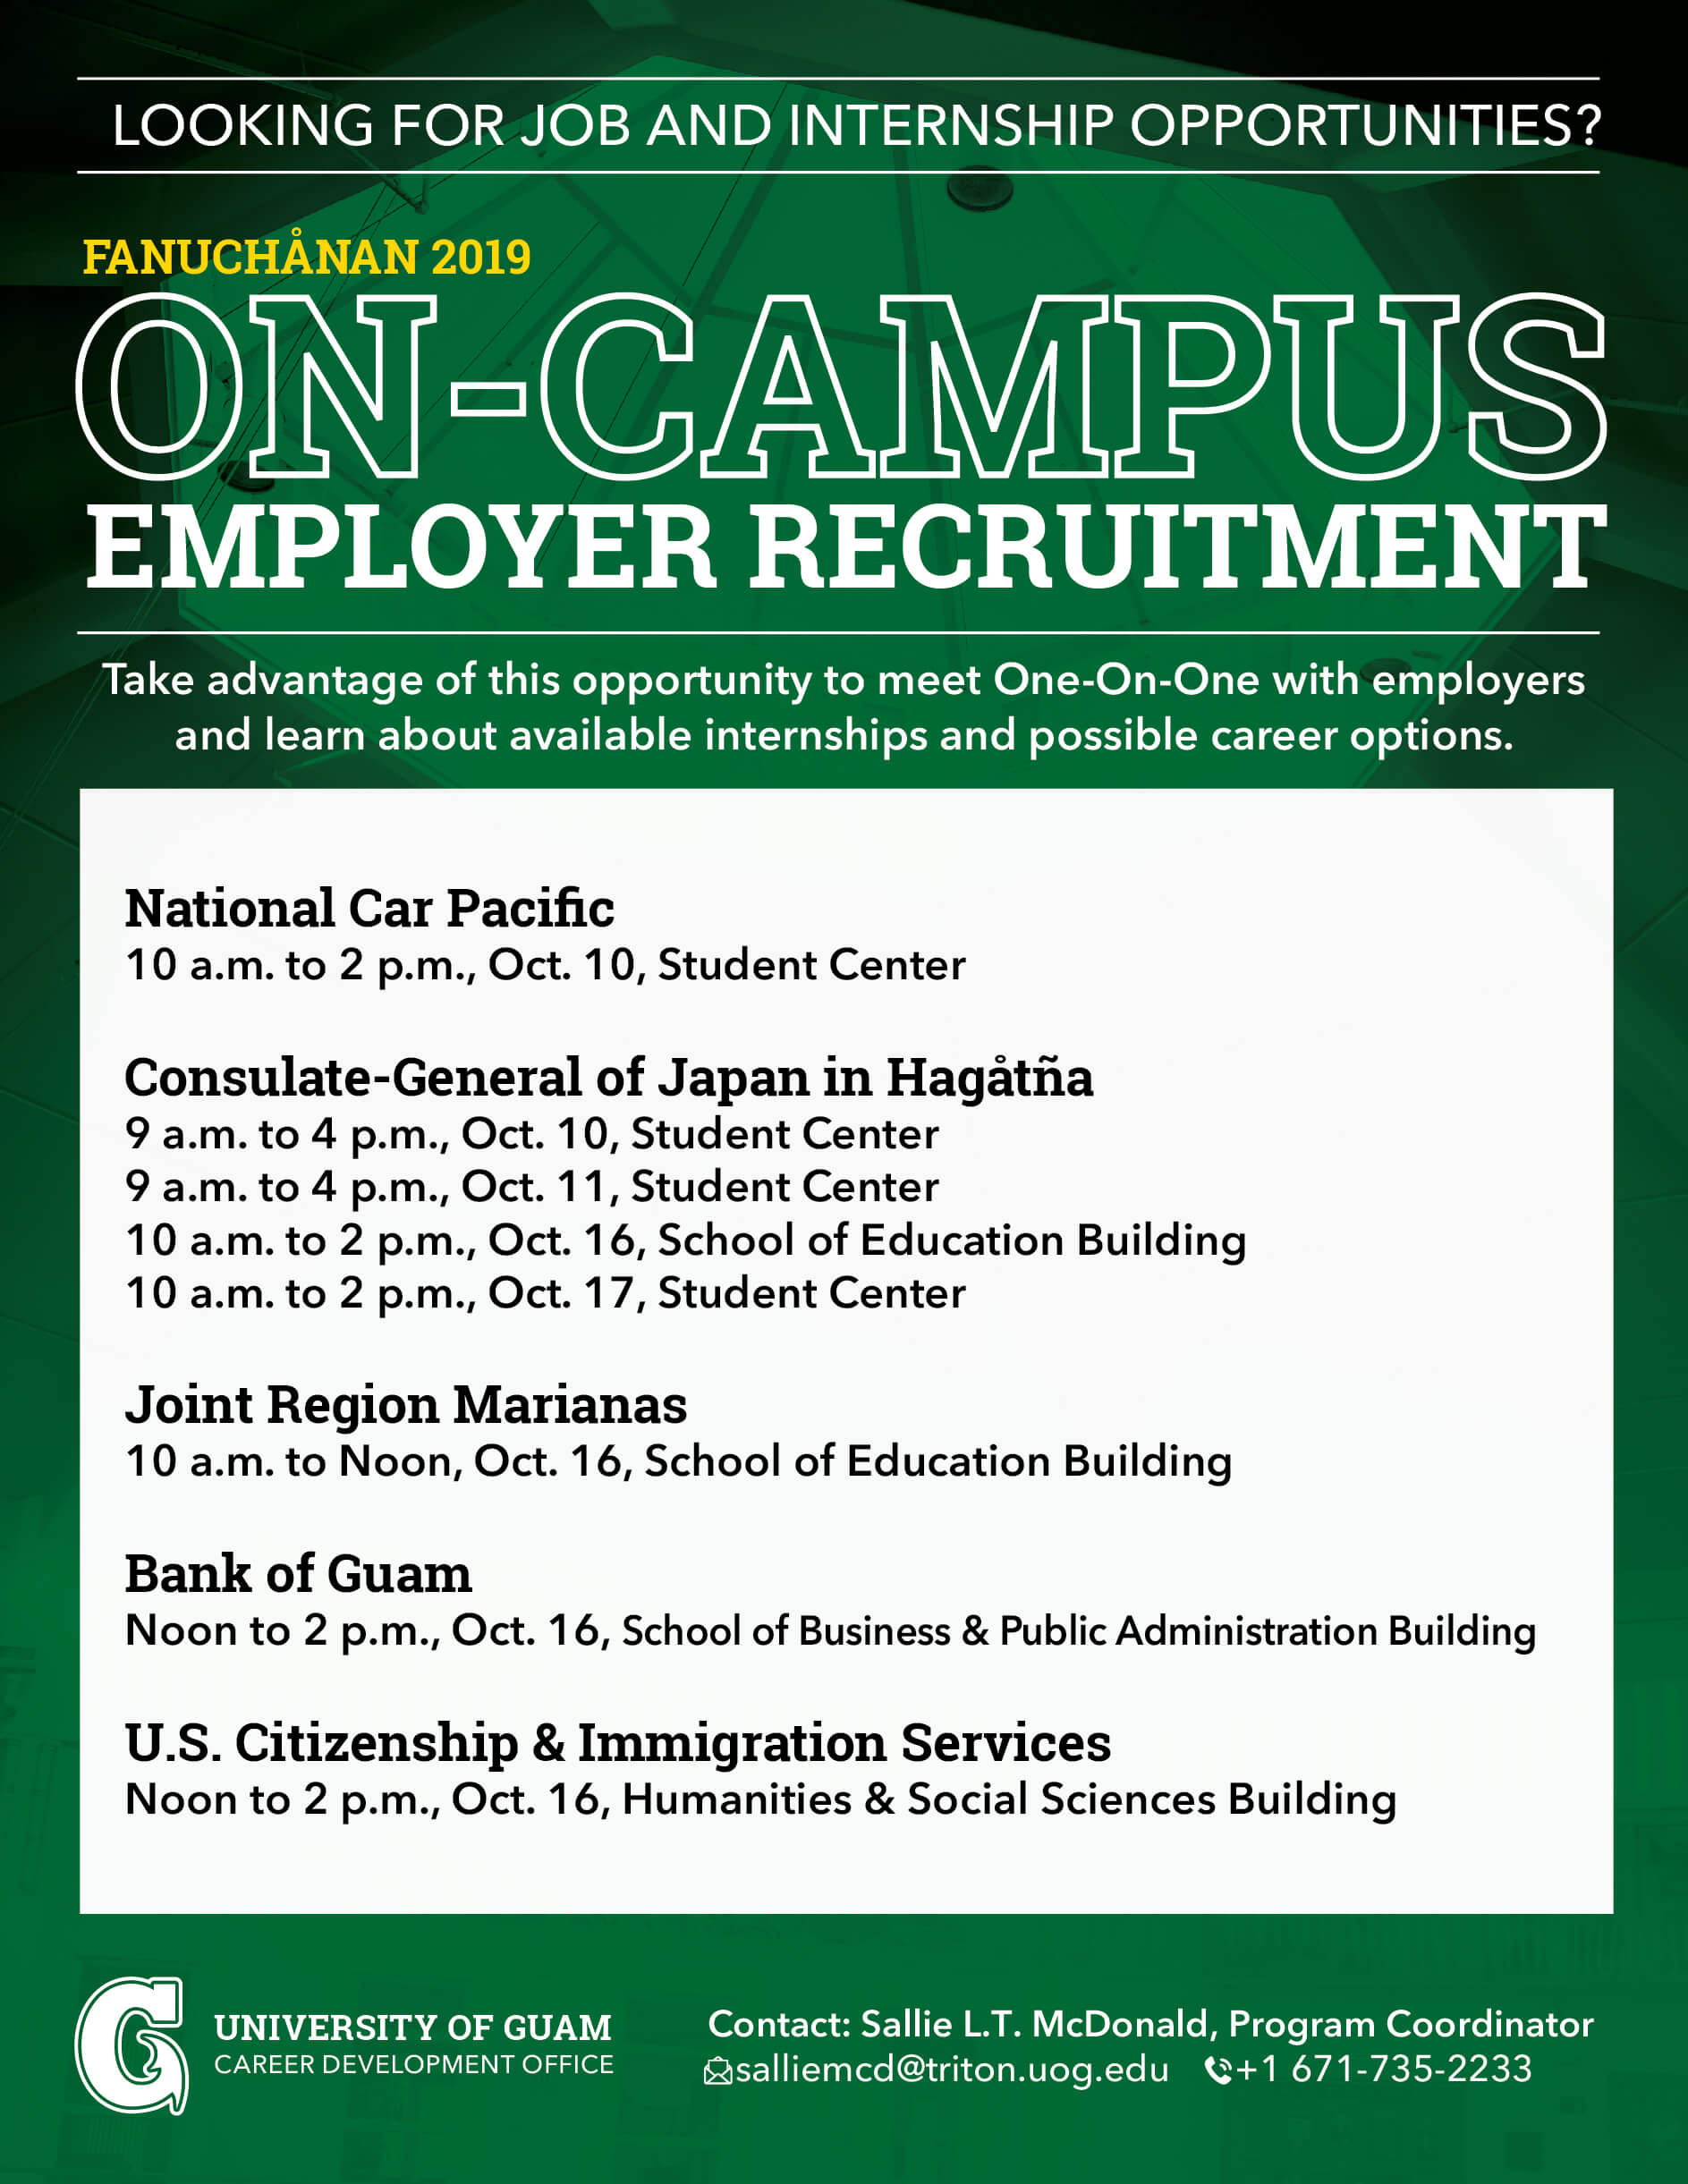 On-Campus Employee Recruitment: Bank of Guam